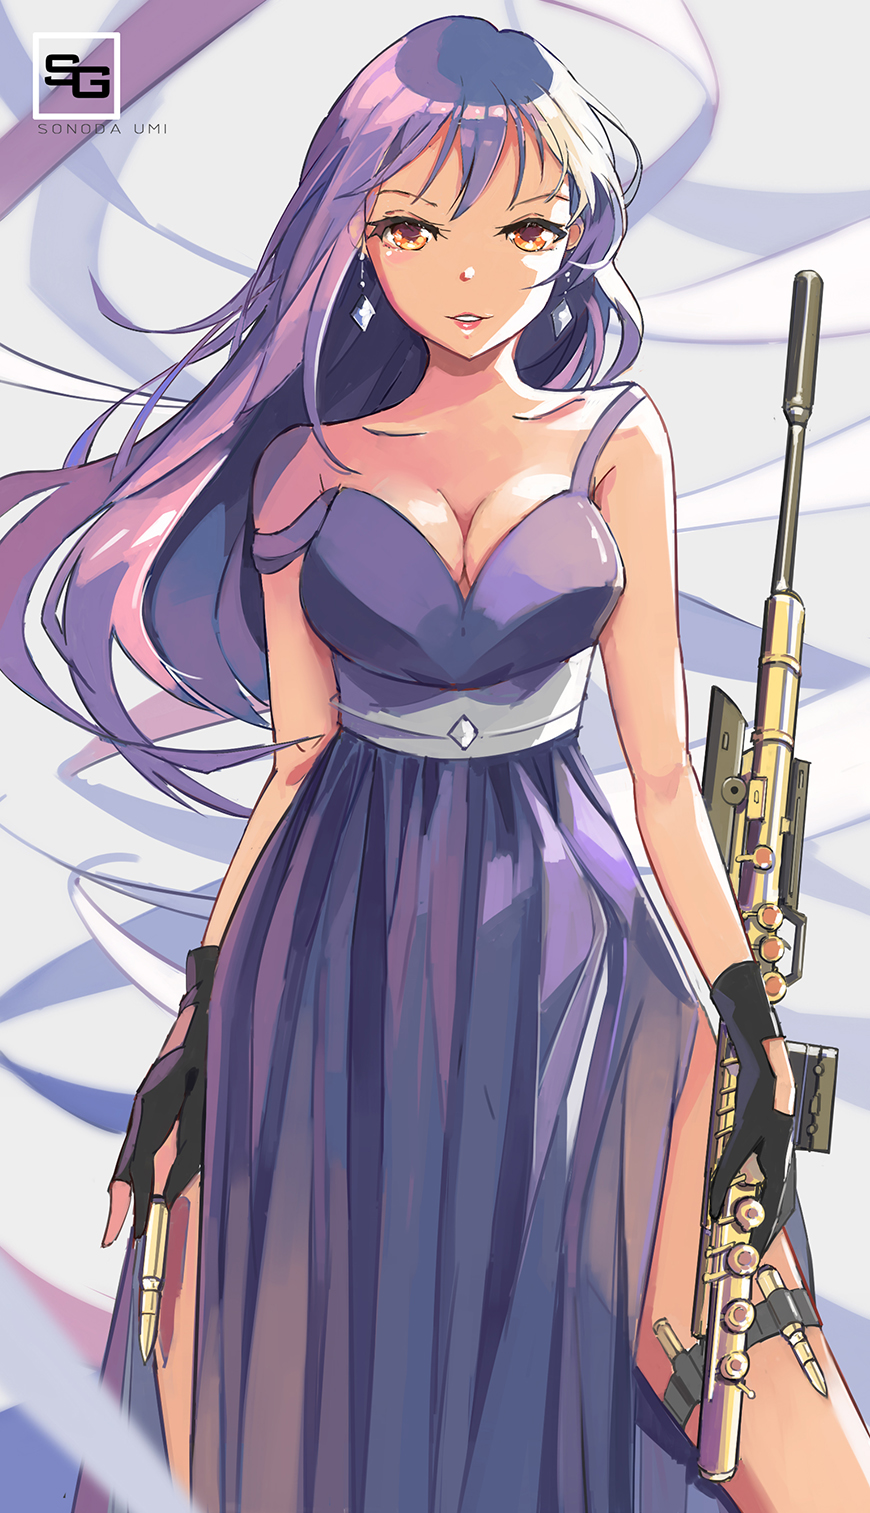 1girl bare_shoulders black_gloves blue_hair blush breasts bullet cleavage commentary_request cowboy_shot dress earrings gloves gun hair_between_eyes highres holding holding_gun holding_weapon jewelry long_hair looking_at_viewer love_live! love_live!_school_idol_project love_live!_sunshine!! qianqian rifle side_slit sleeveless sleeveless_dress sniper_rifle solo sonoda_umi strap_slip weapon yellow_eyes